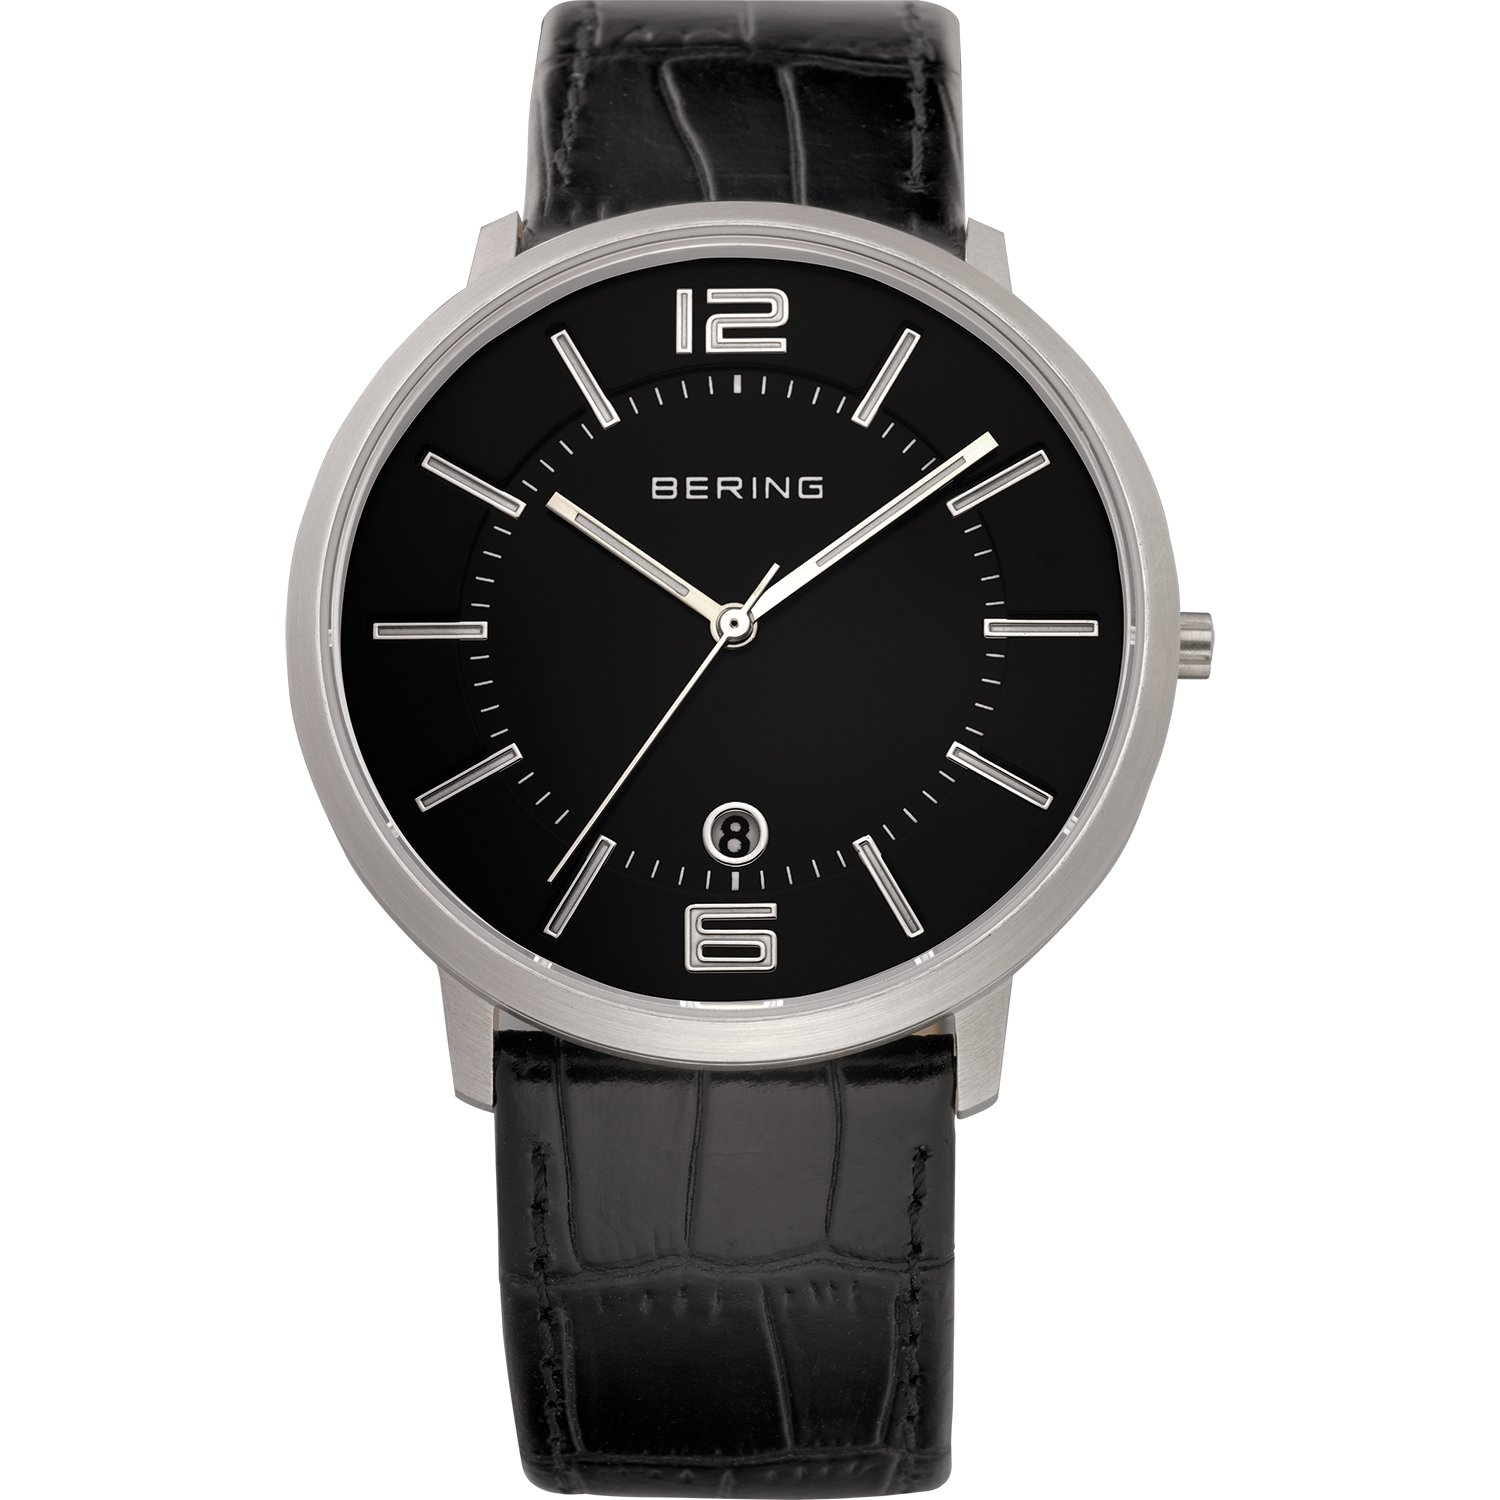 BERING Time 11139-409 Classic Collection Watch with Calfskin Band and Scratch Resistant Sapphire Crystal. Designed in Denmark.